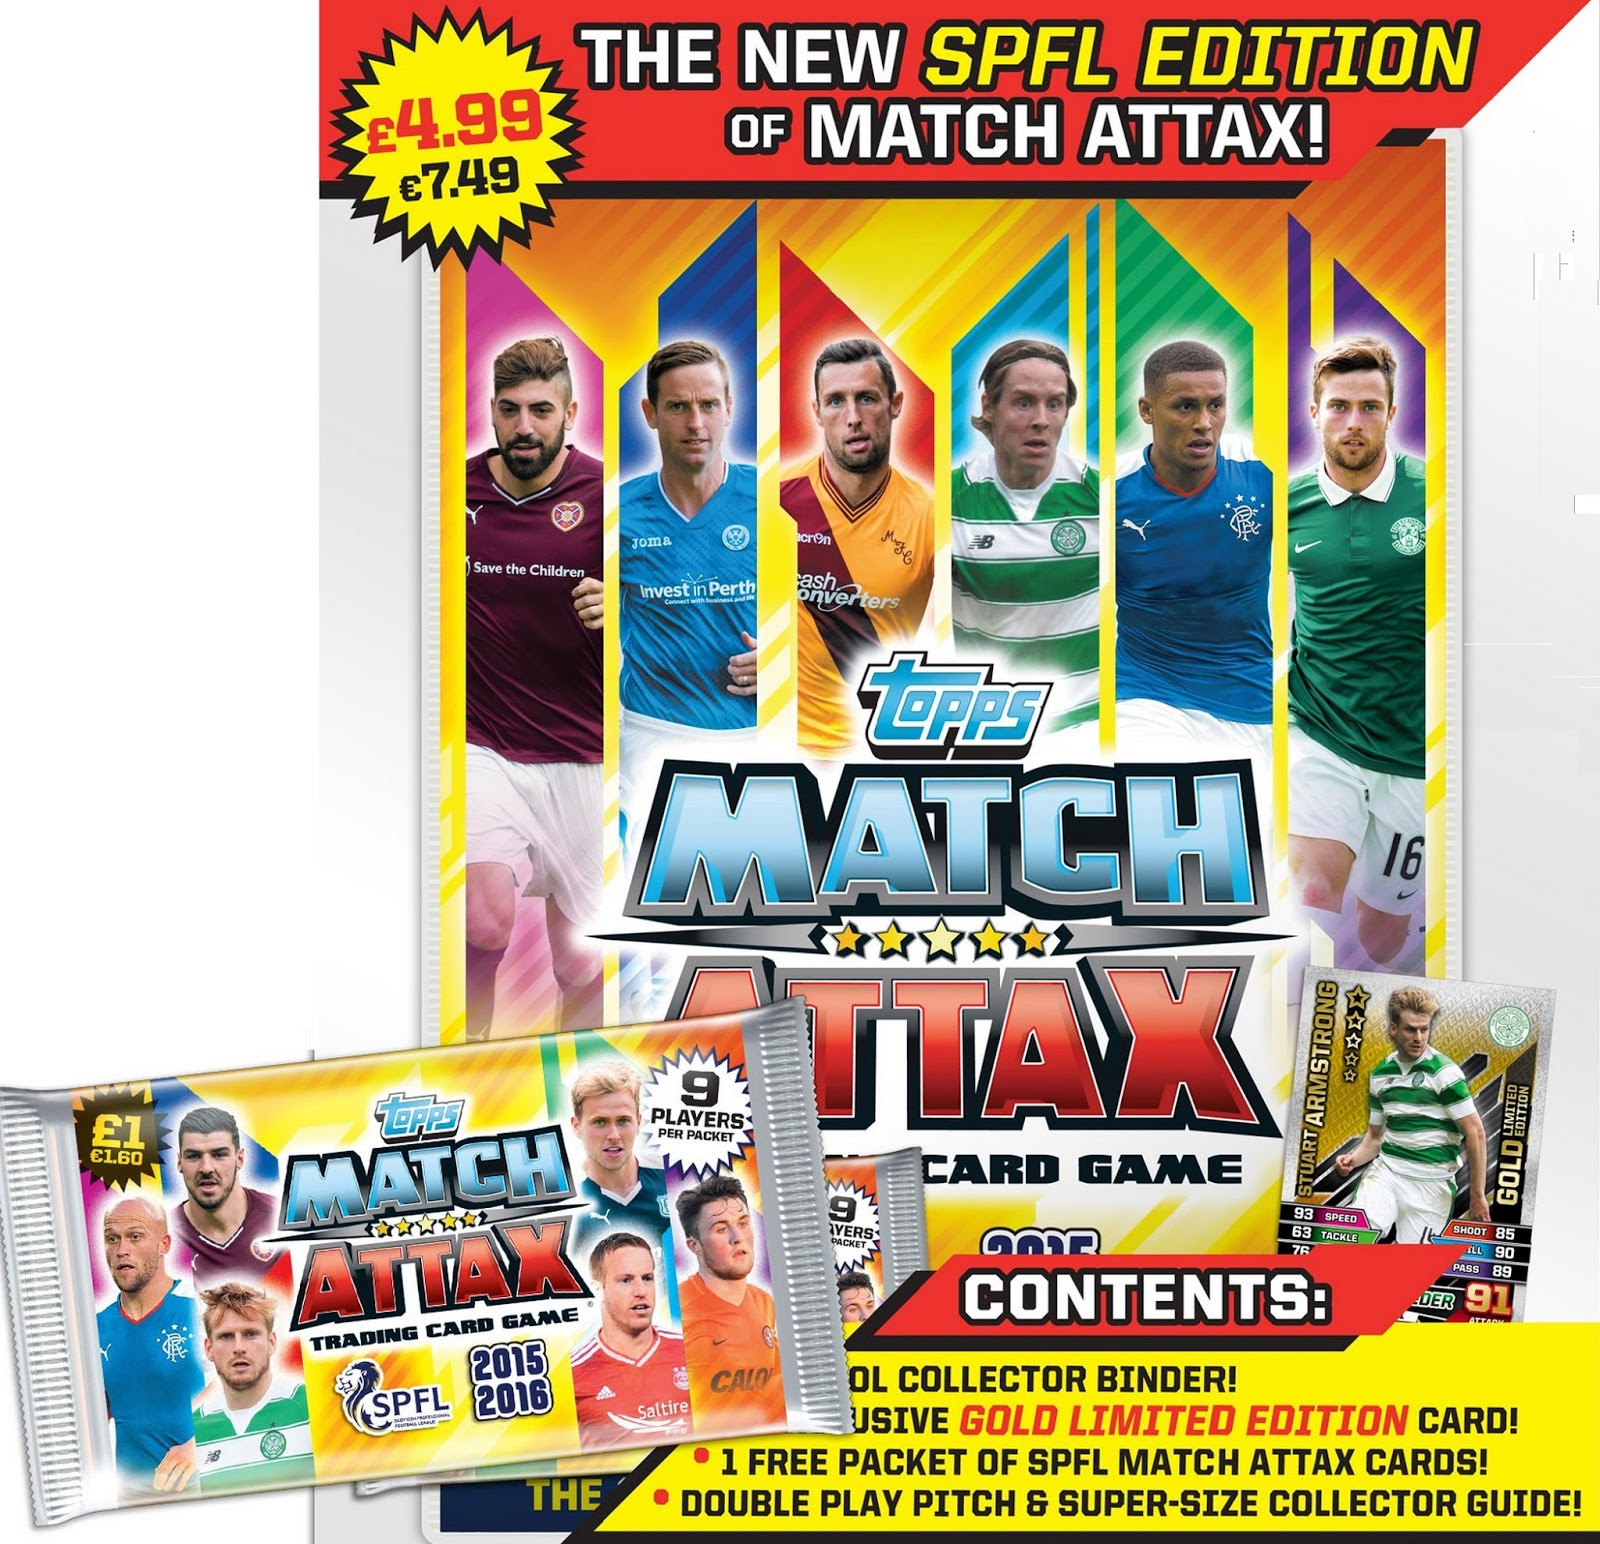 topps match attax youtube sex